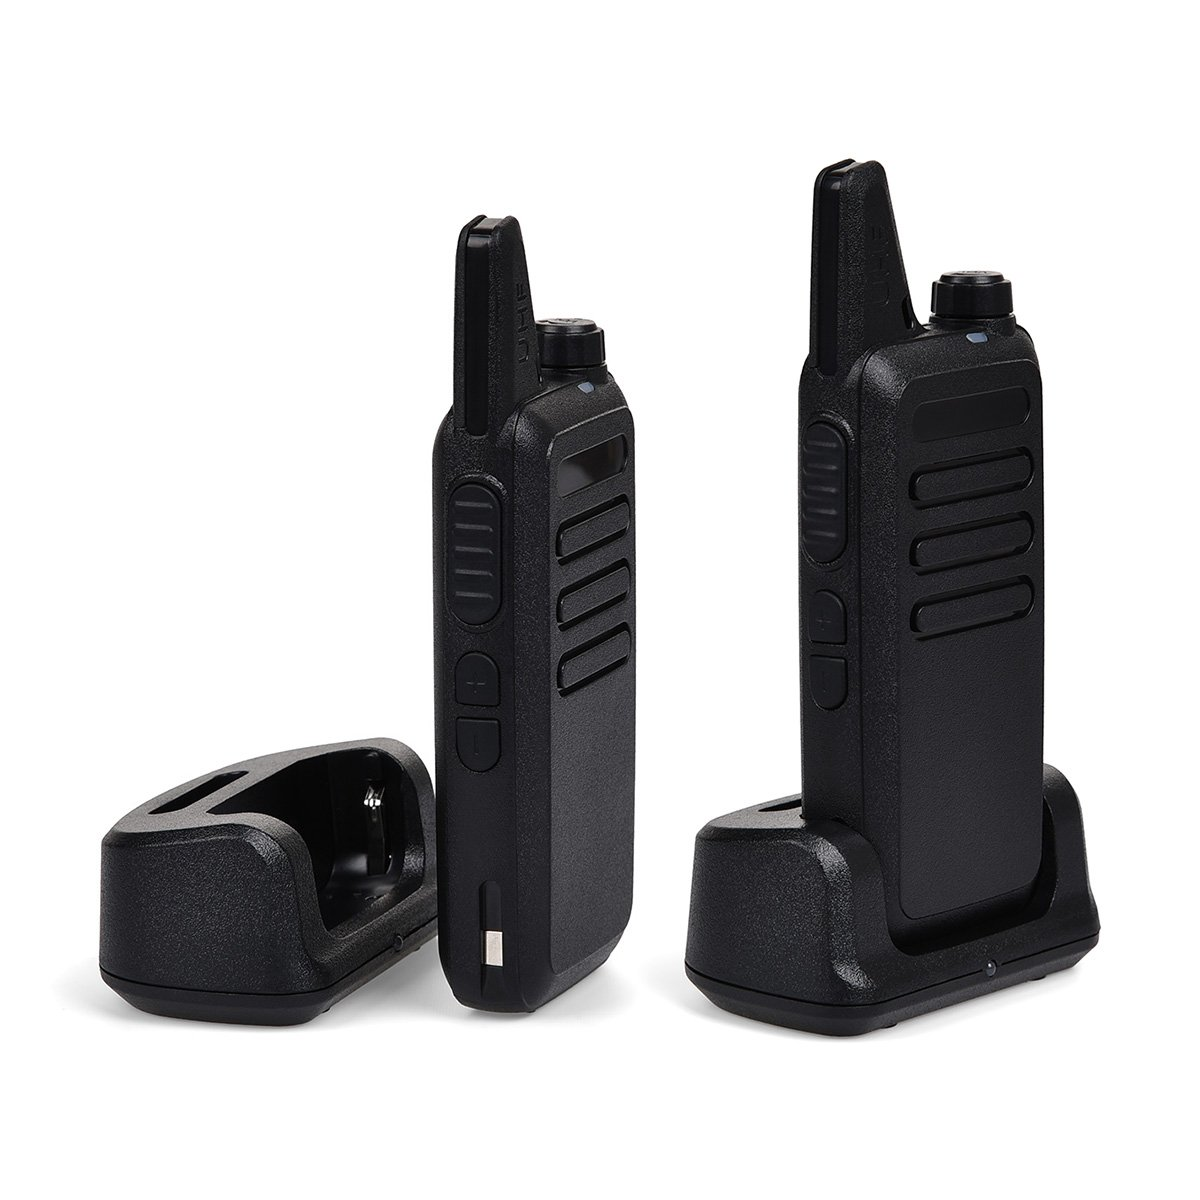 Swiftion Rechargeable Walkie Talkies for Hunting Long Range 2 Way Radio Walky Talky Rechargable Professional interphone for Trave for Police 16 Channel 2 Way Radios with Charger (Pack of 2) by Swiftion (Image #2)